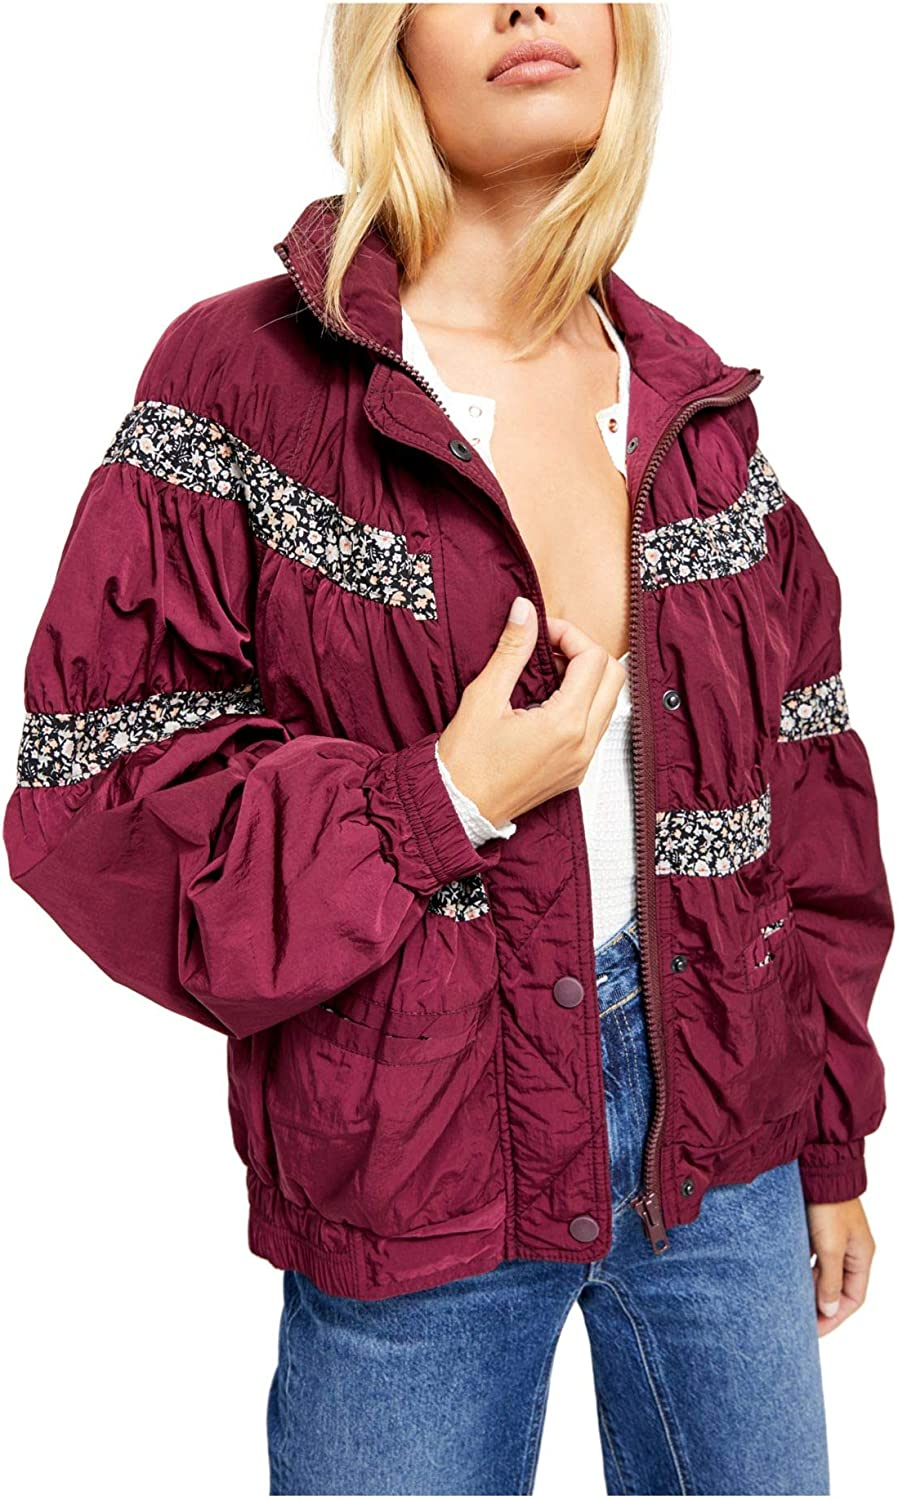 We The Free Womens On My Mind Winter Oversize Bomber Jacket Purple L